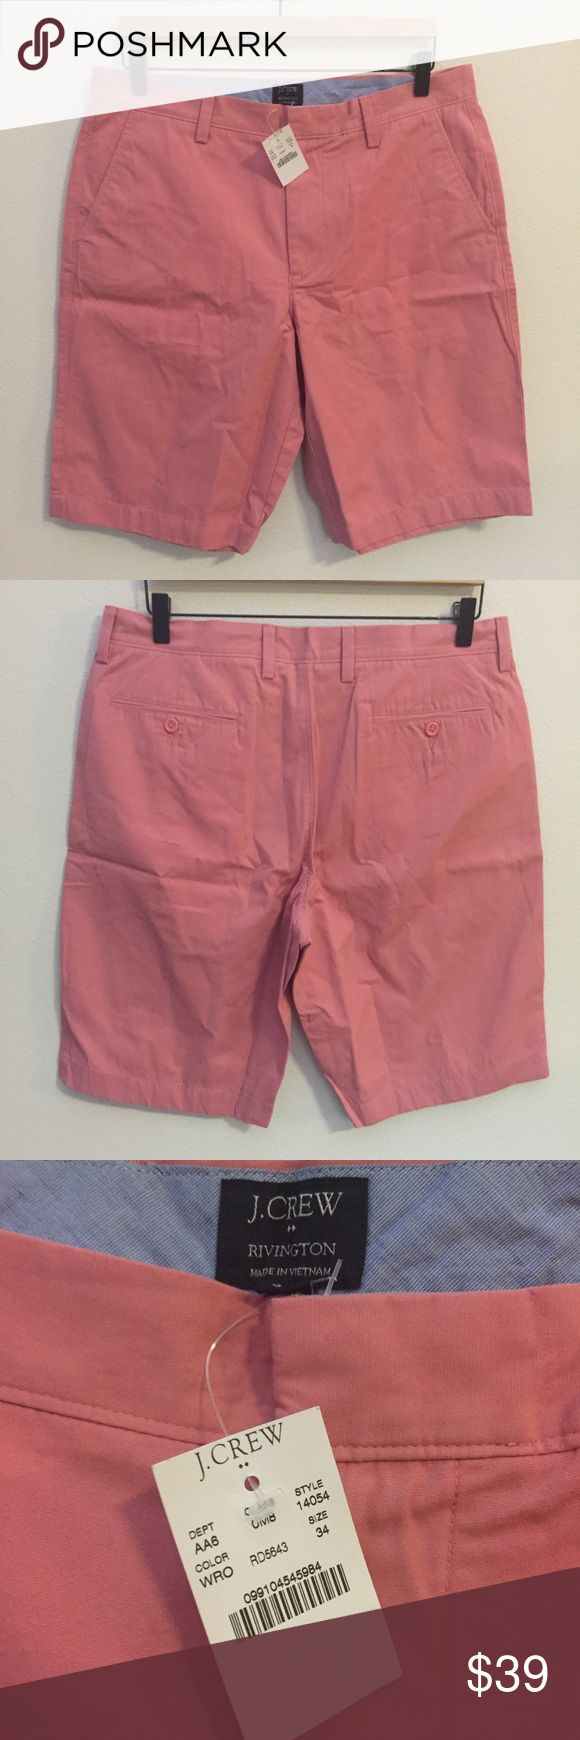 NEW! J.Crew Irvington Shorts, Size 34 J.Crew Men's Shorts.  Size 34 Waist.  NEW WITH TAG! Button & zipper fly closure. Salmon pink color. 100% Cotton J. Crew Shorts